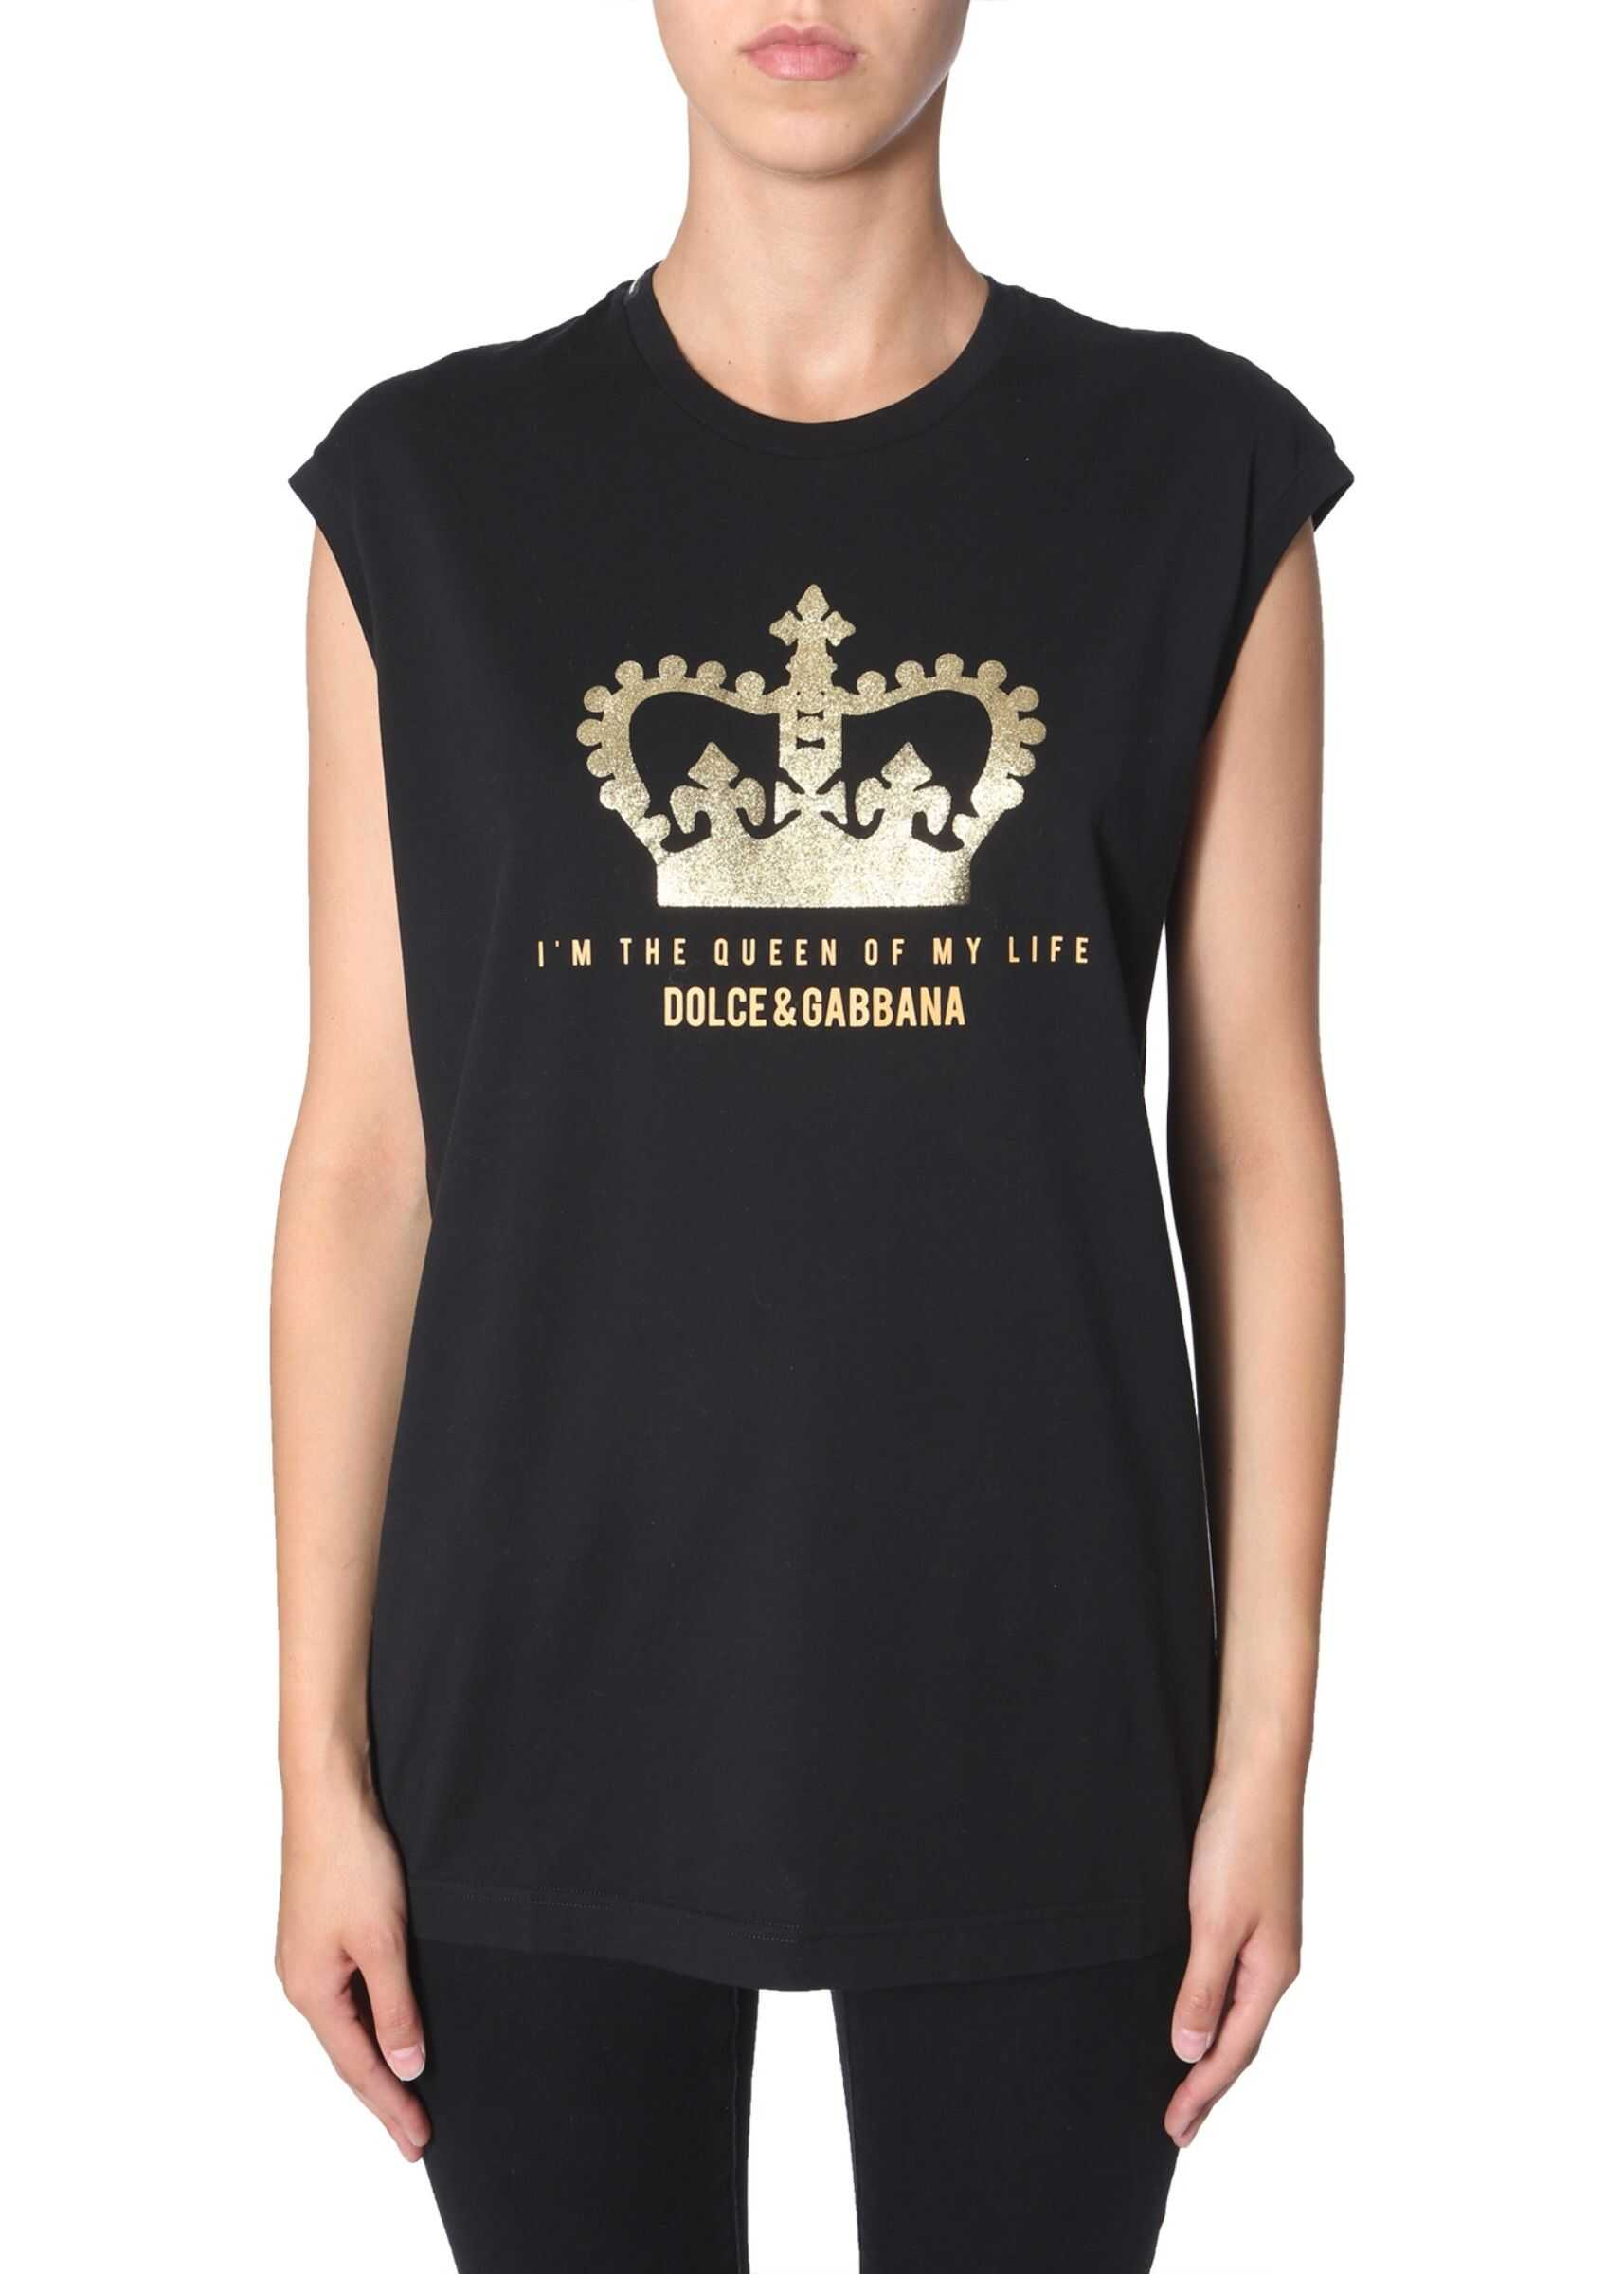 Dolce & Gabbana T-Shirt Without Sleeves BLACK